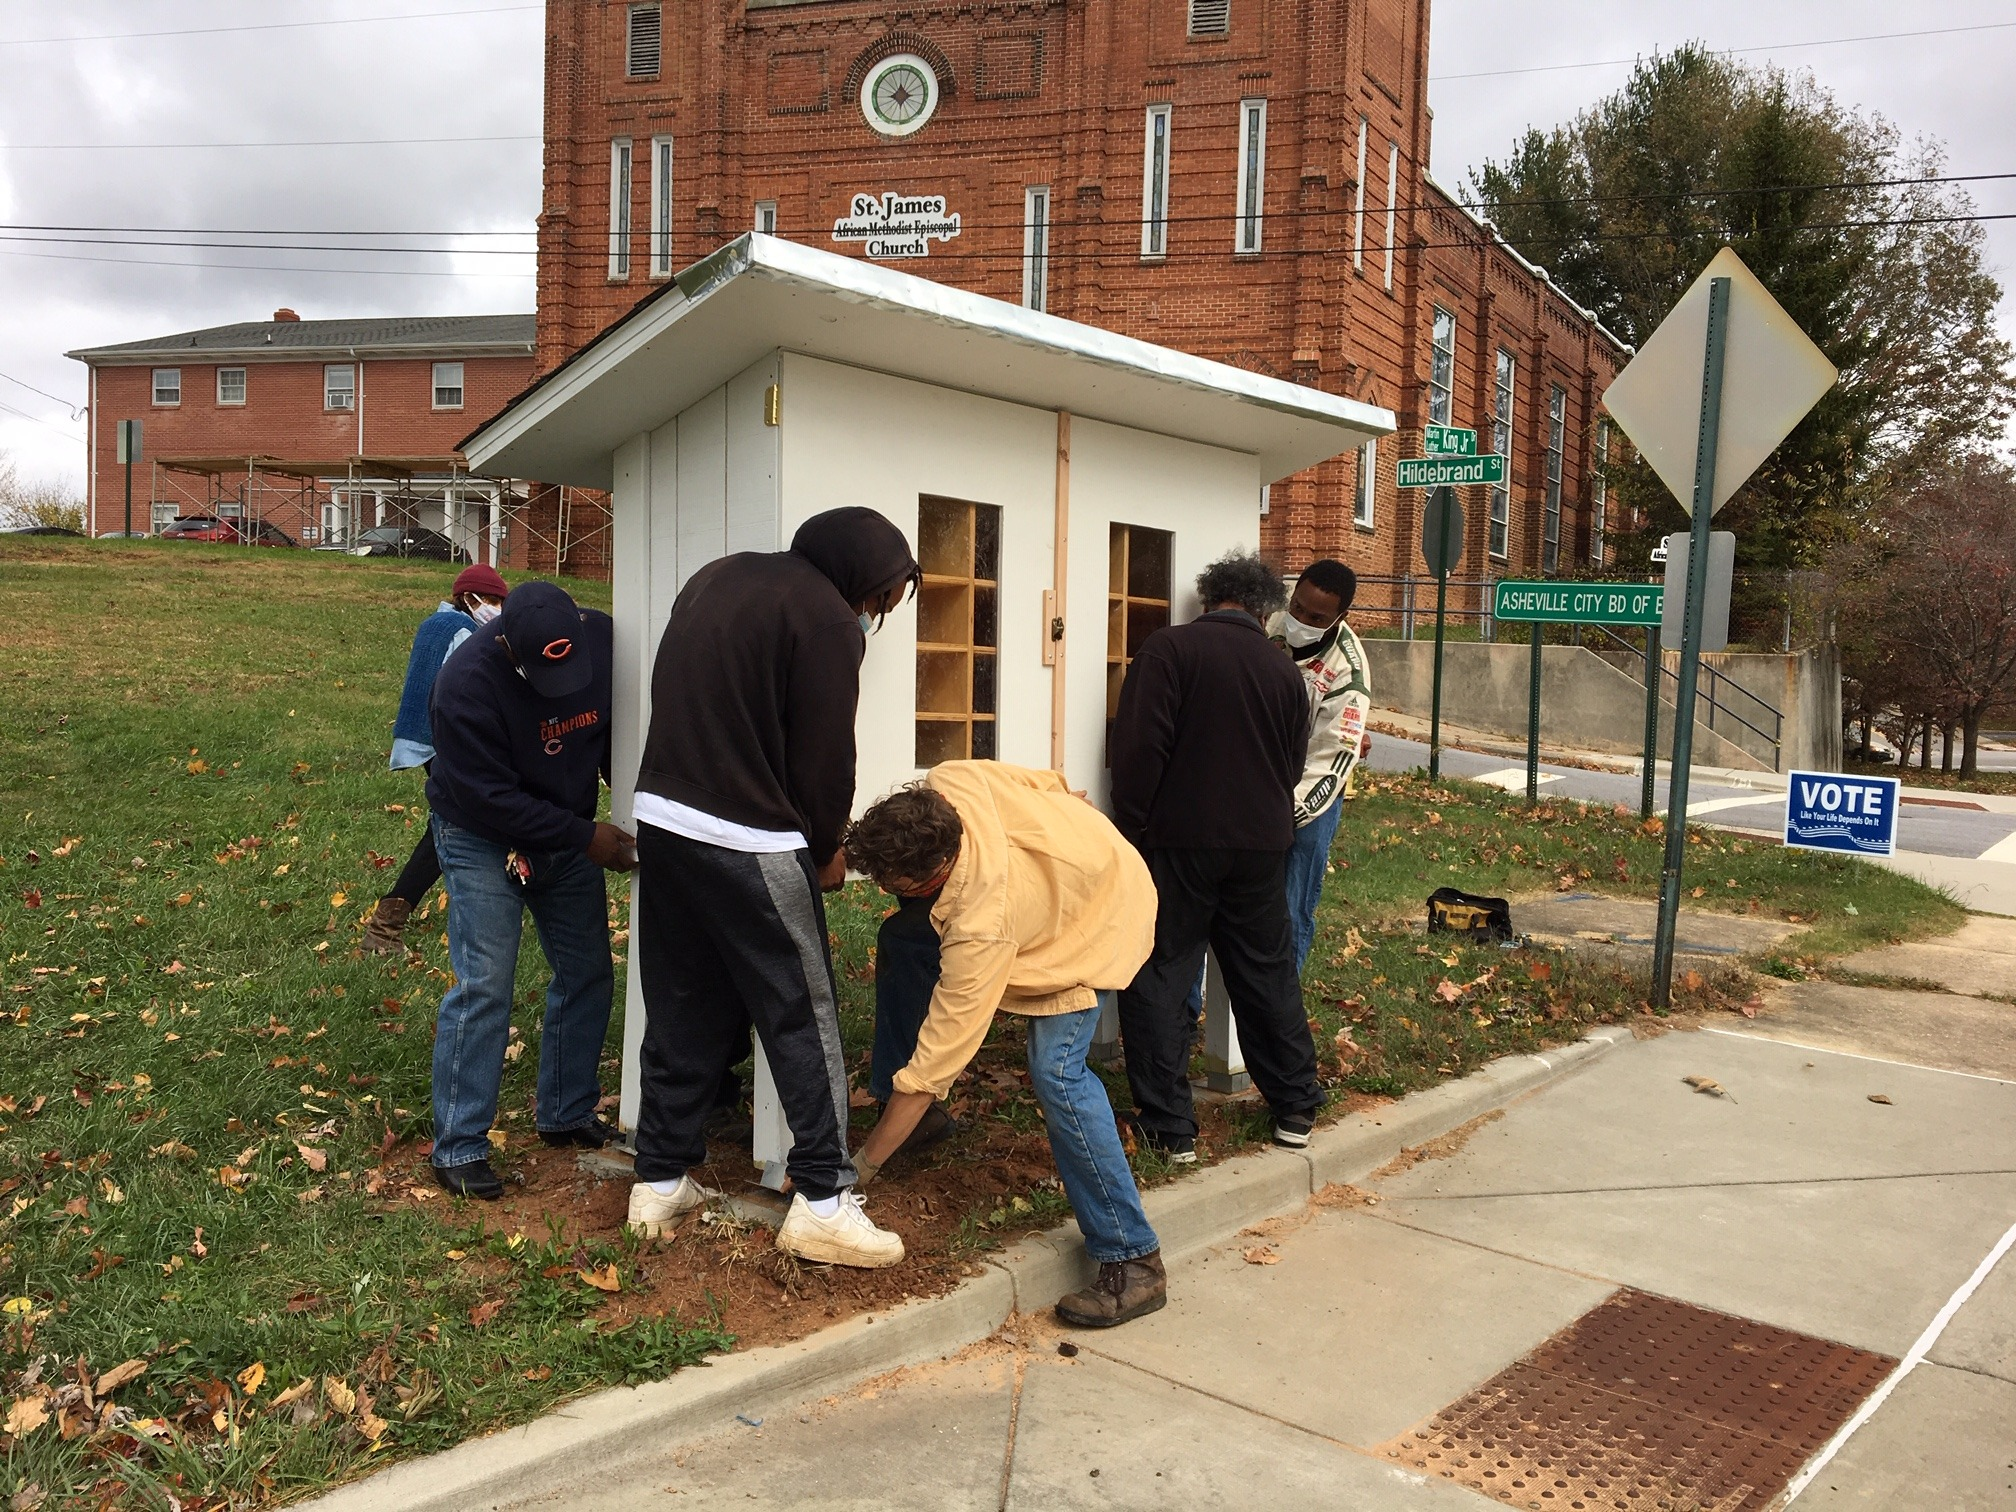 Asheville-Buncombe Food Policy Council will support the construction of another wooden food pantry by and for community members, just like they did in 2020!